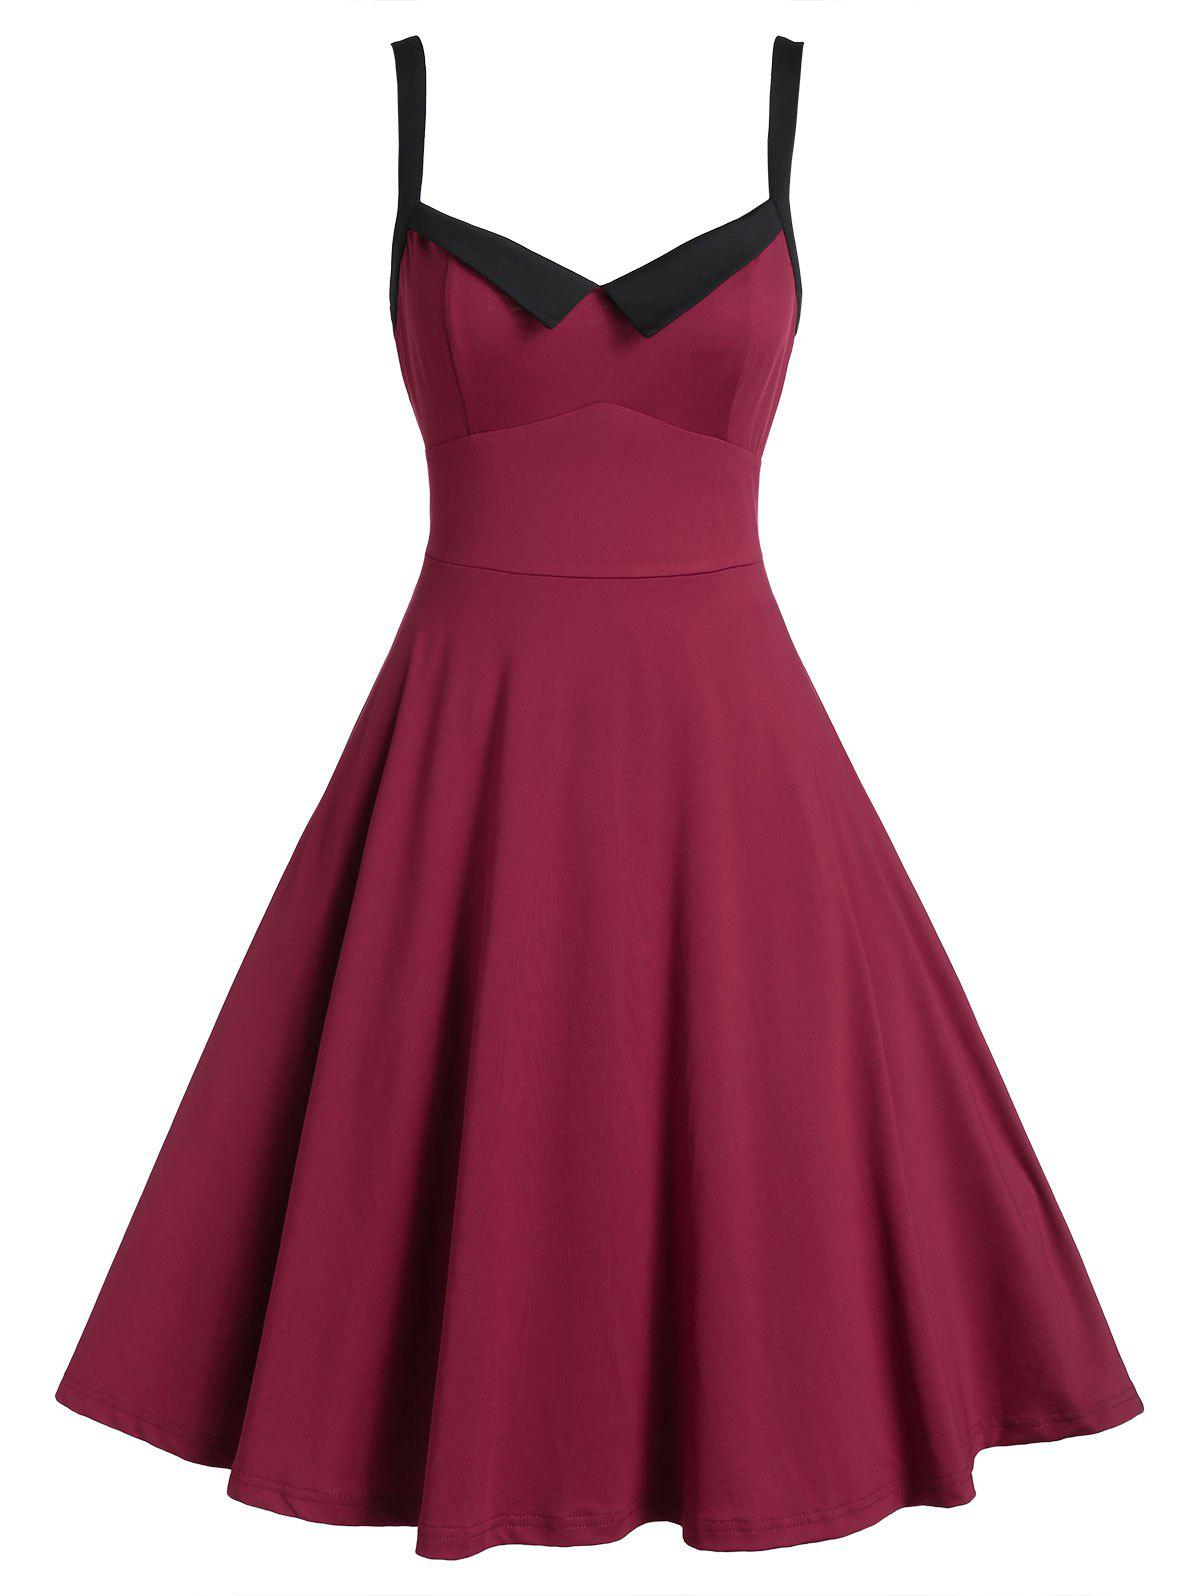 Sleeveless Vintage Flare Prom Dress - RED WINE 3XL